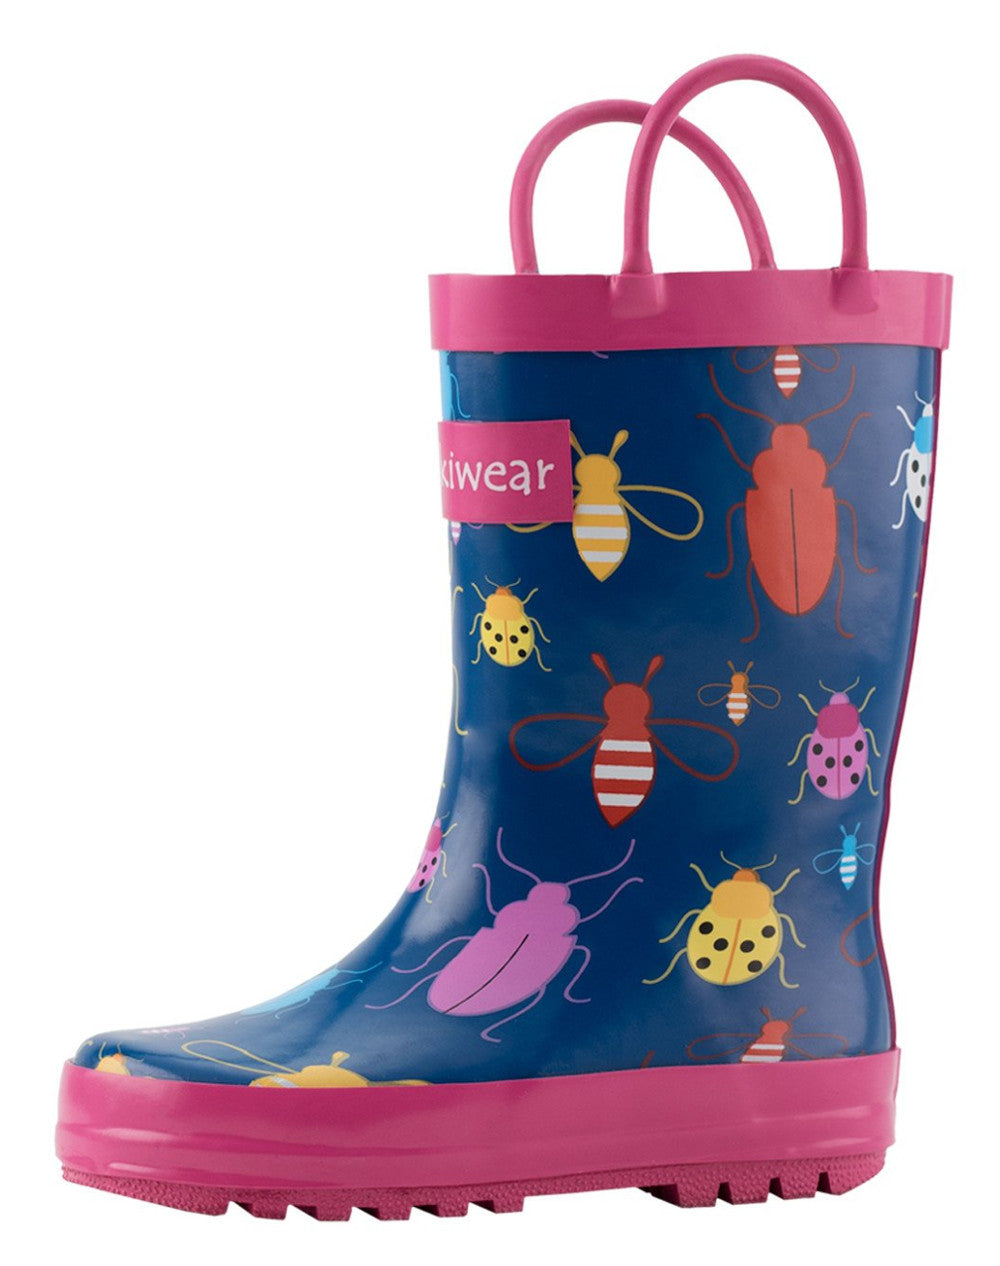 Bees, Beetles, and Lady Bugs Loop Handle Rubber Rain Boots